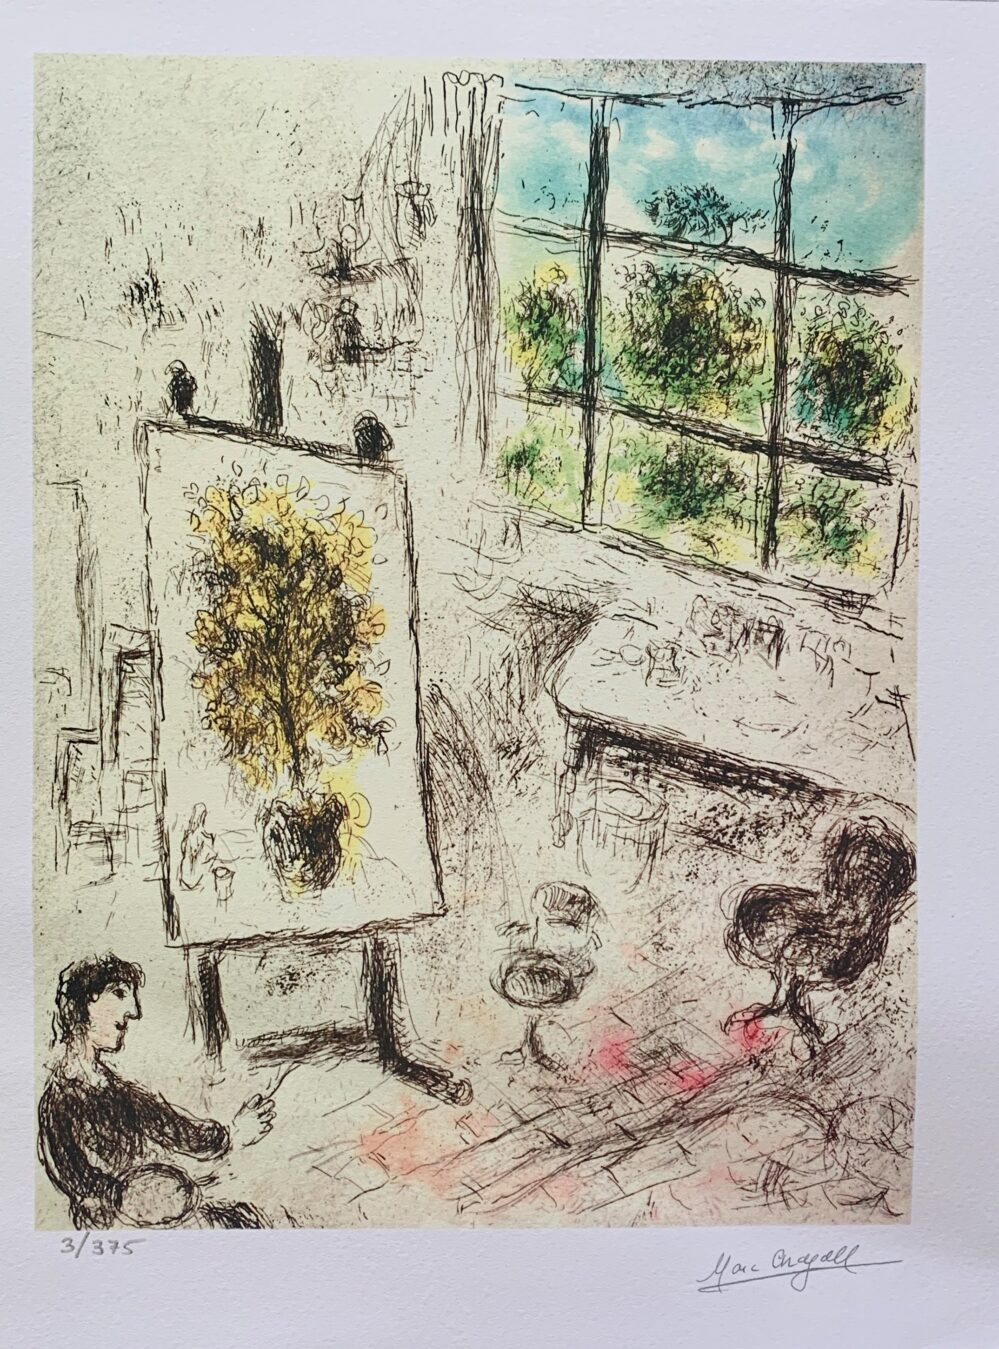 Marc Chagall ARAGON MALRAUX Limited Edition Facsimile Signed X-Small Giclee